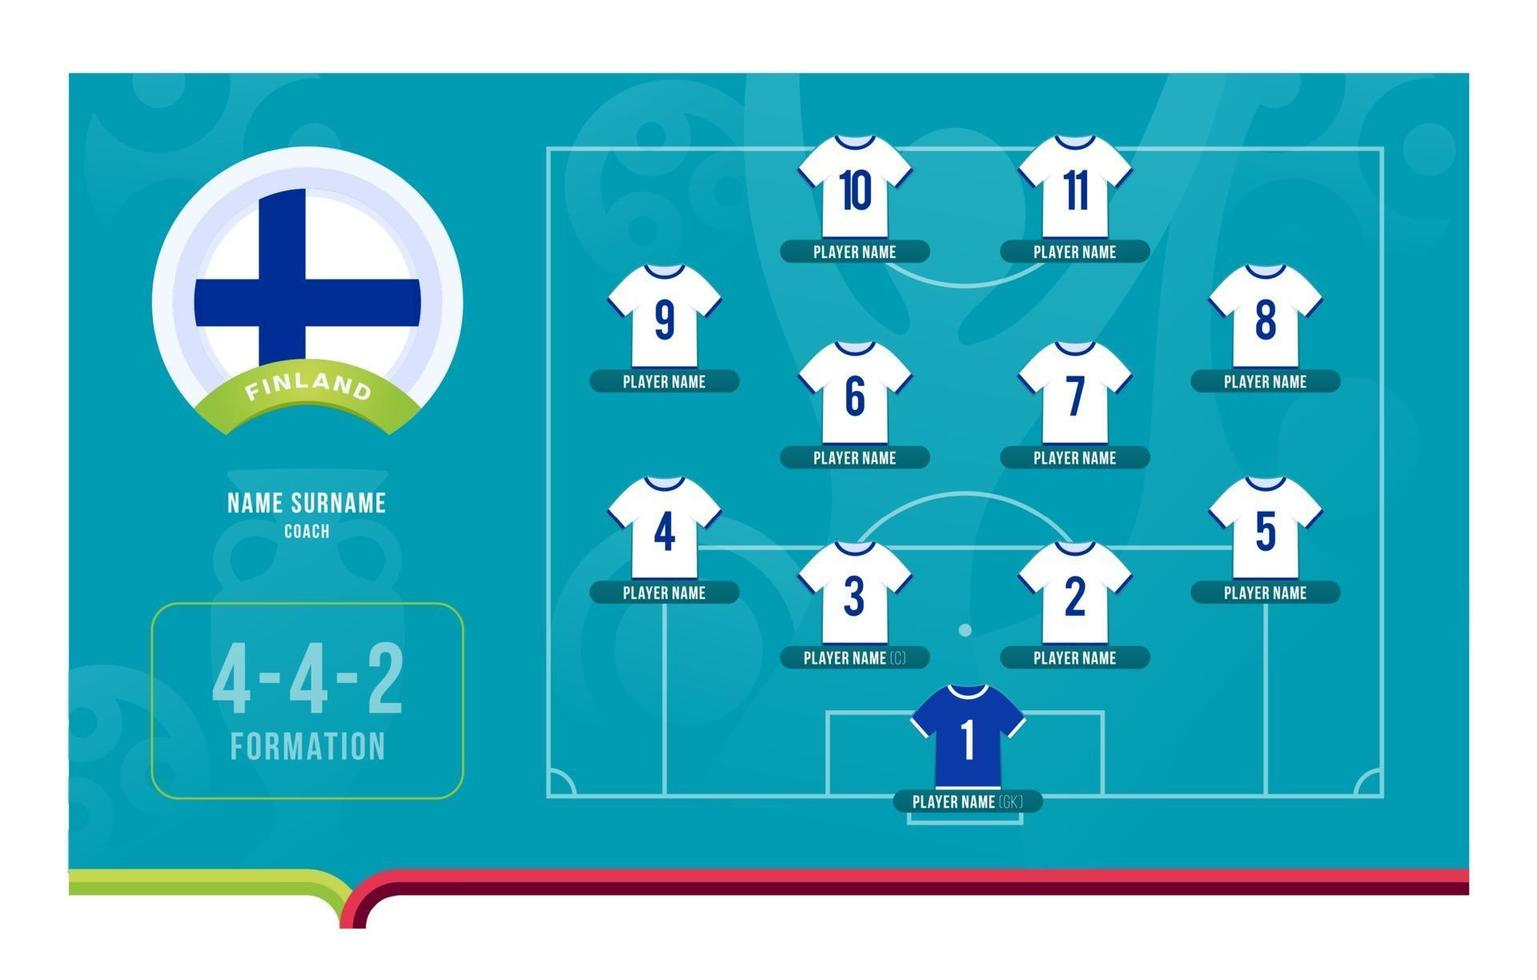 Finland line-up Football tournament final stage vector illustration